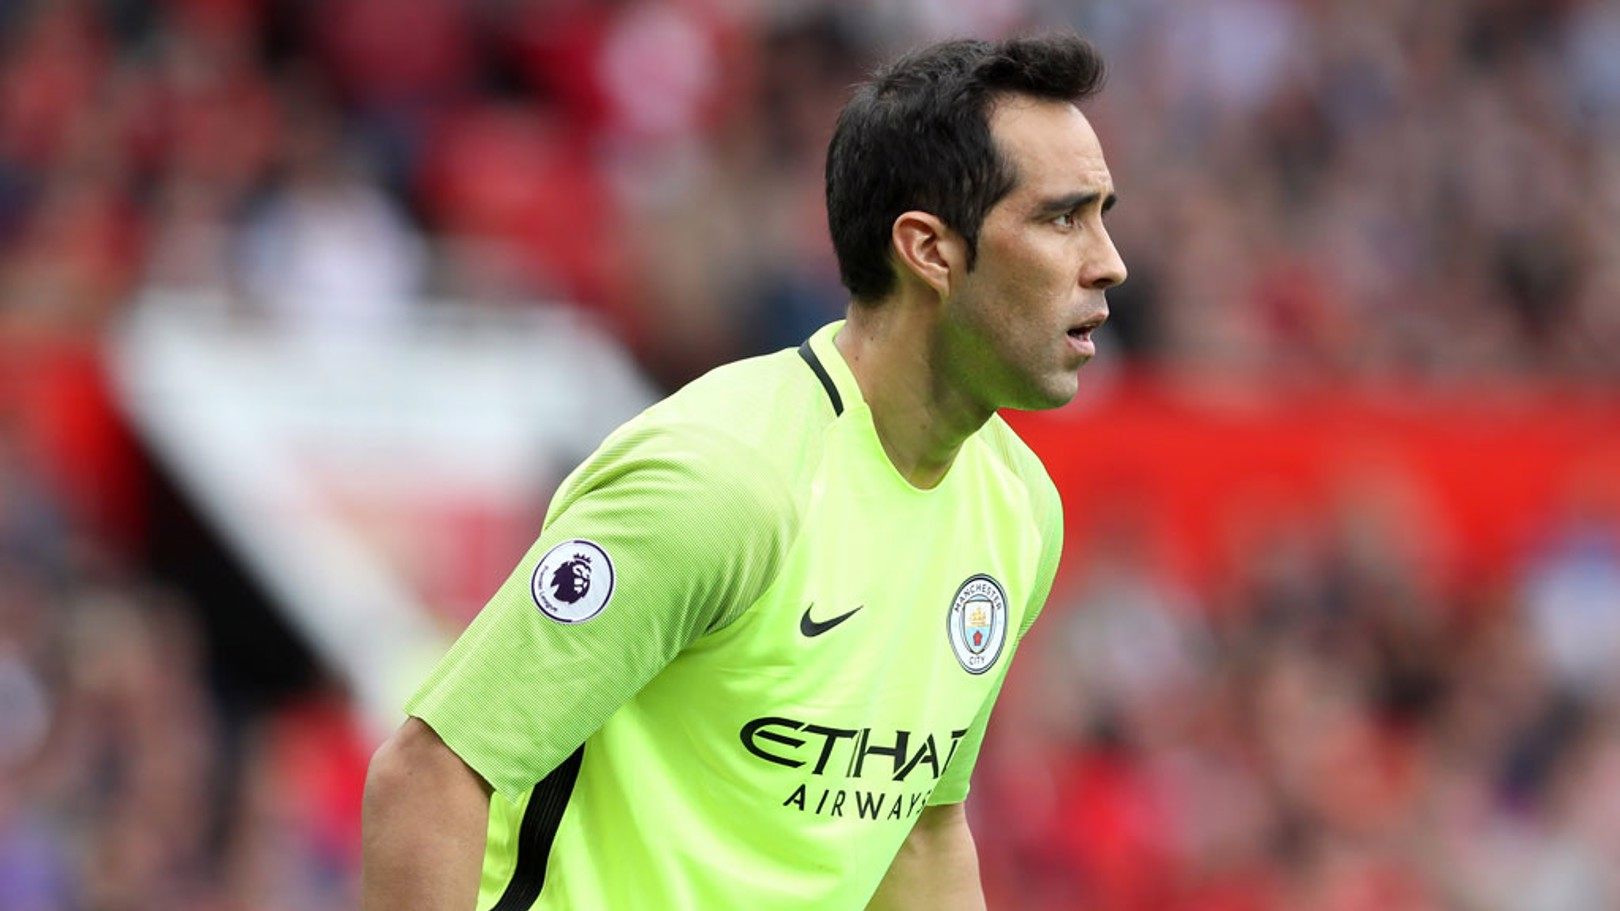 CLAUDIO BRAVO: The last minute of the match